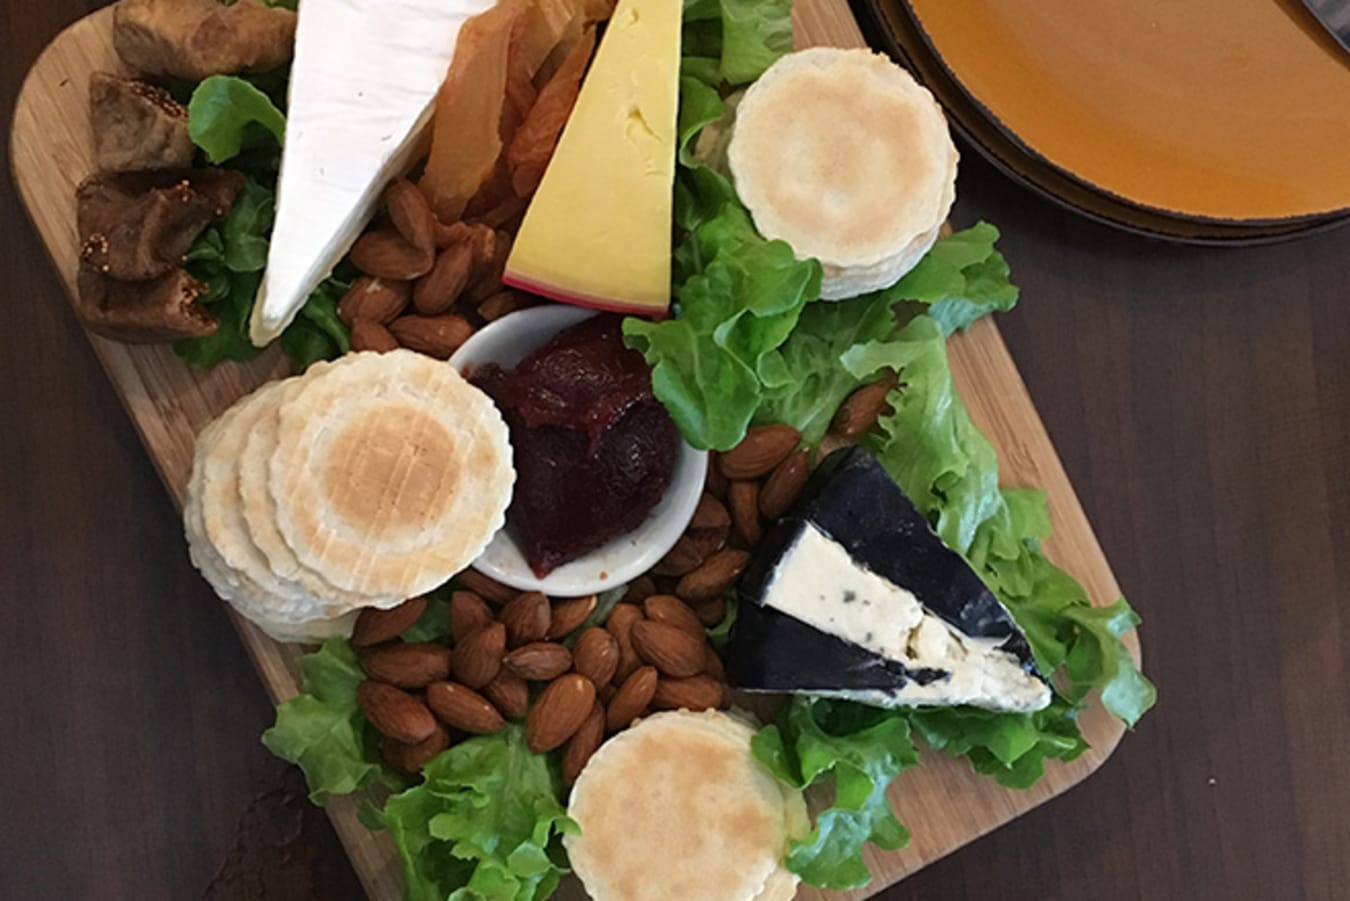 Cheese lunch